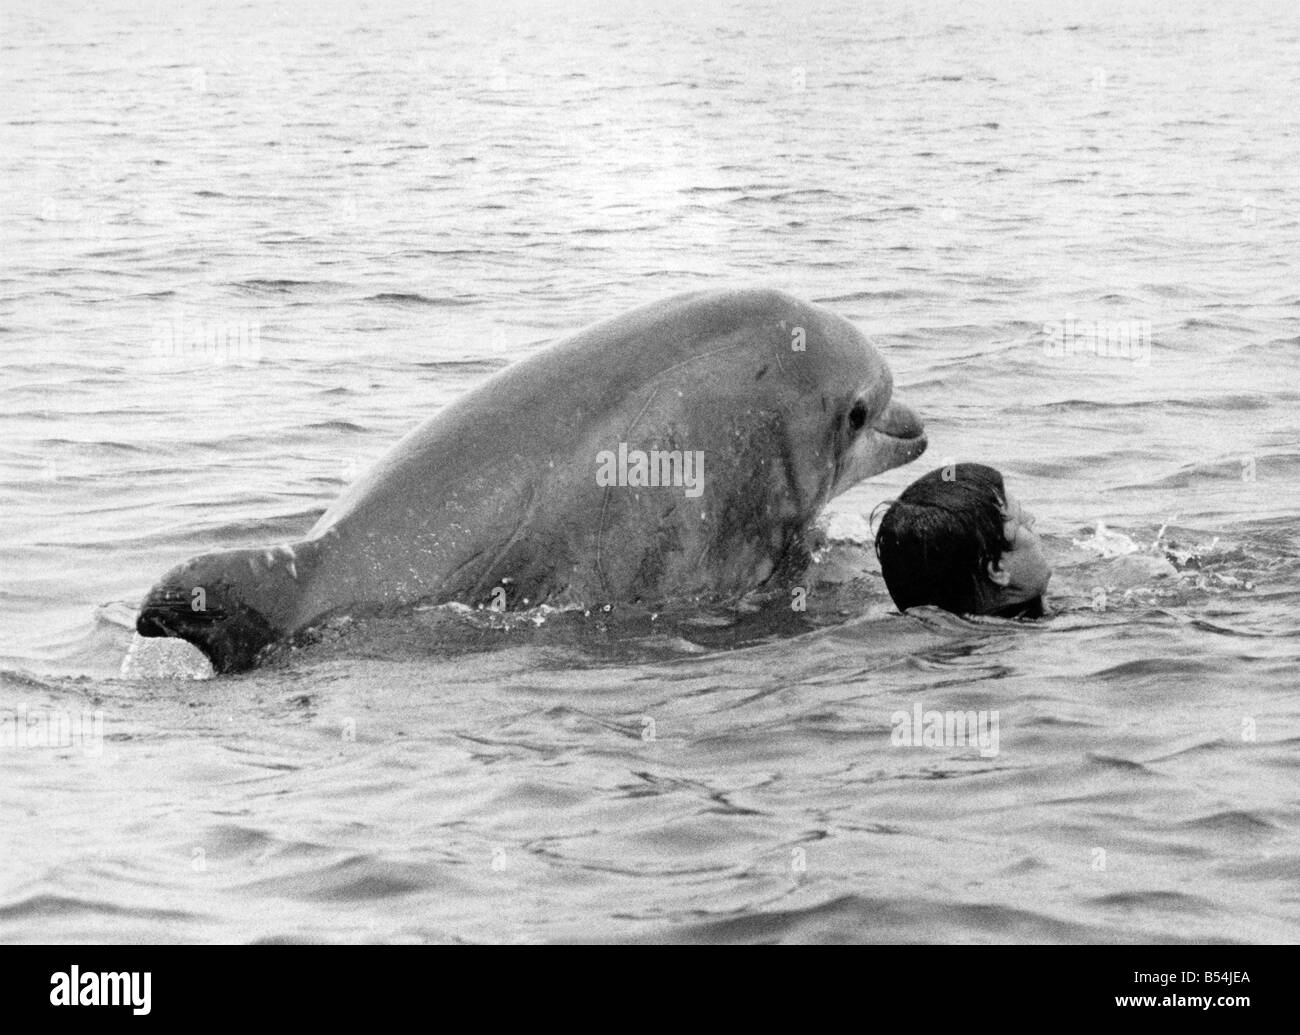 Lakeman and Percy the dolphin swimming together. 